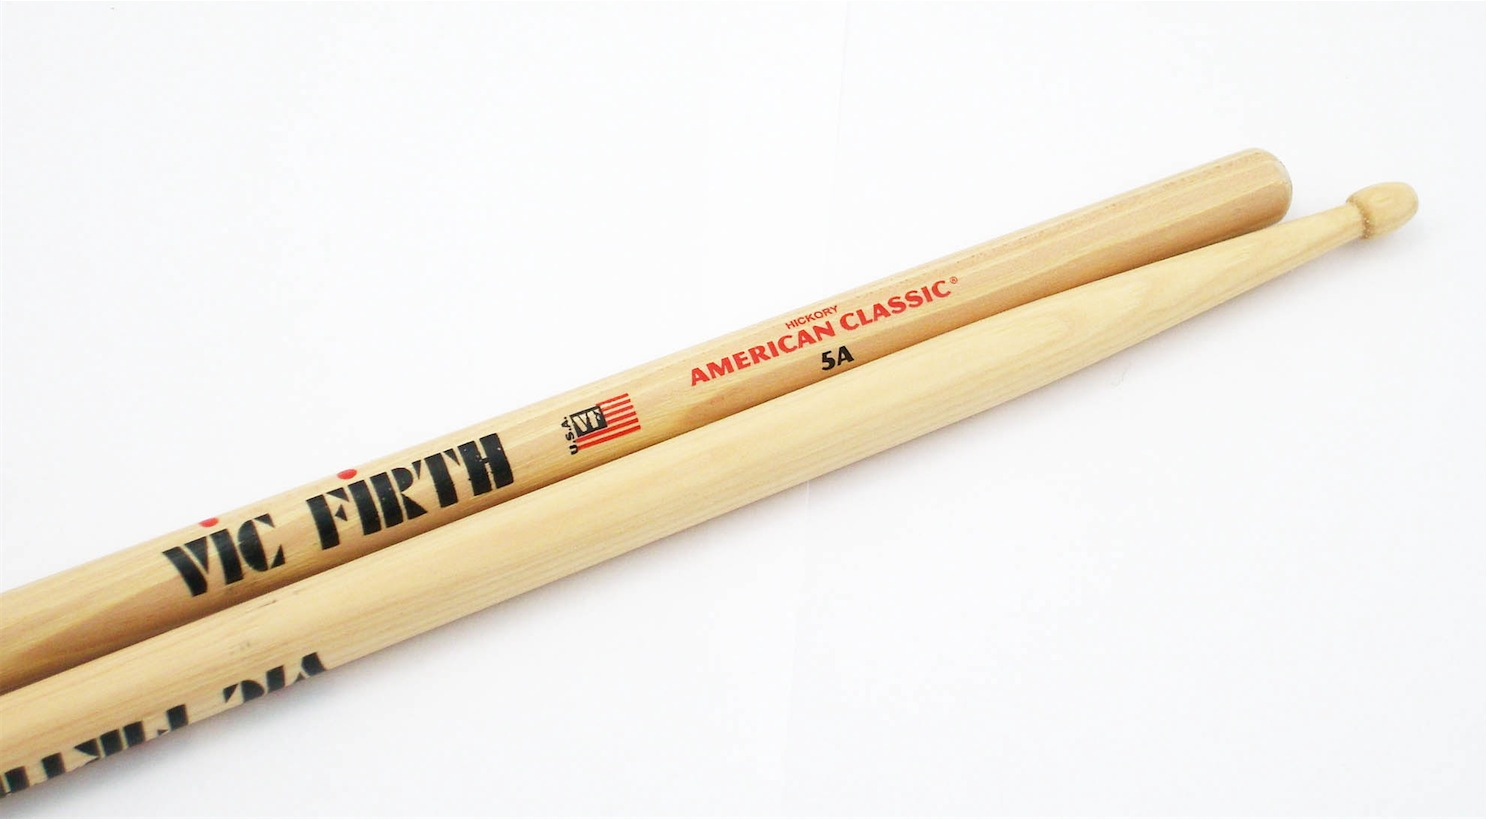 vic-firth-5a